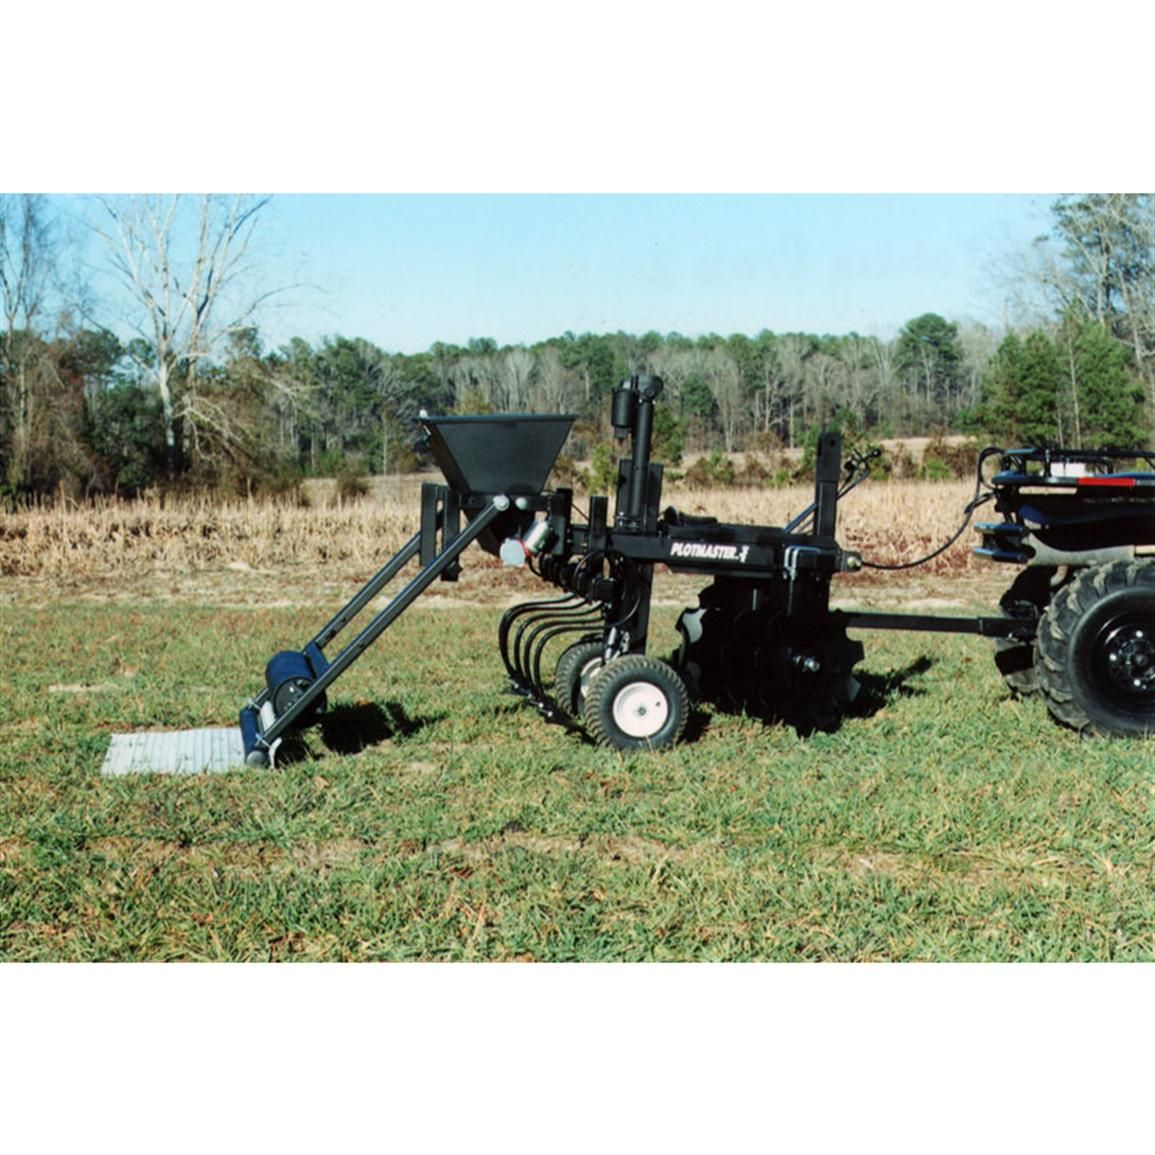 Atv implements are provided by which